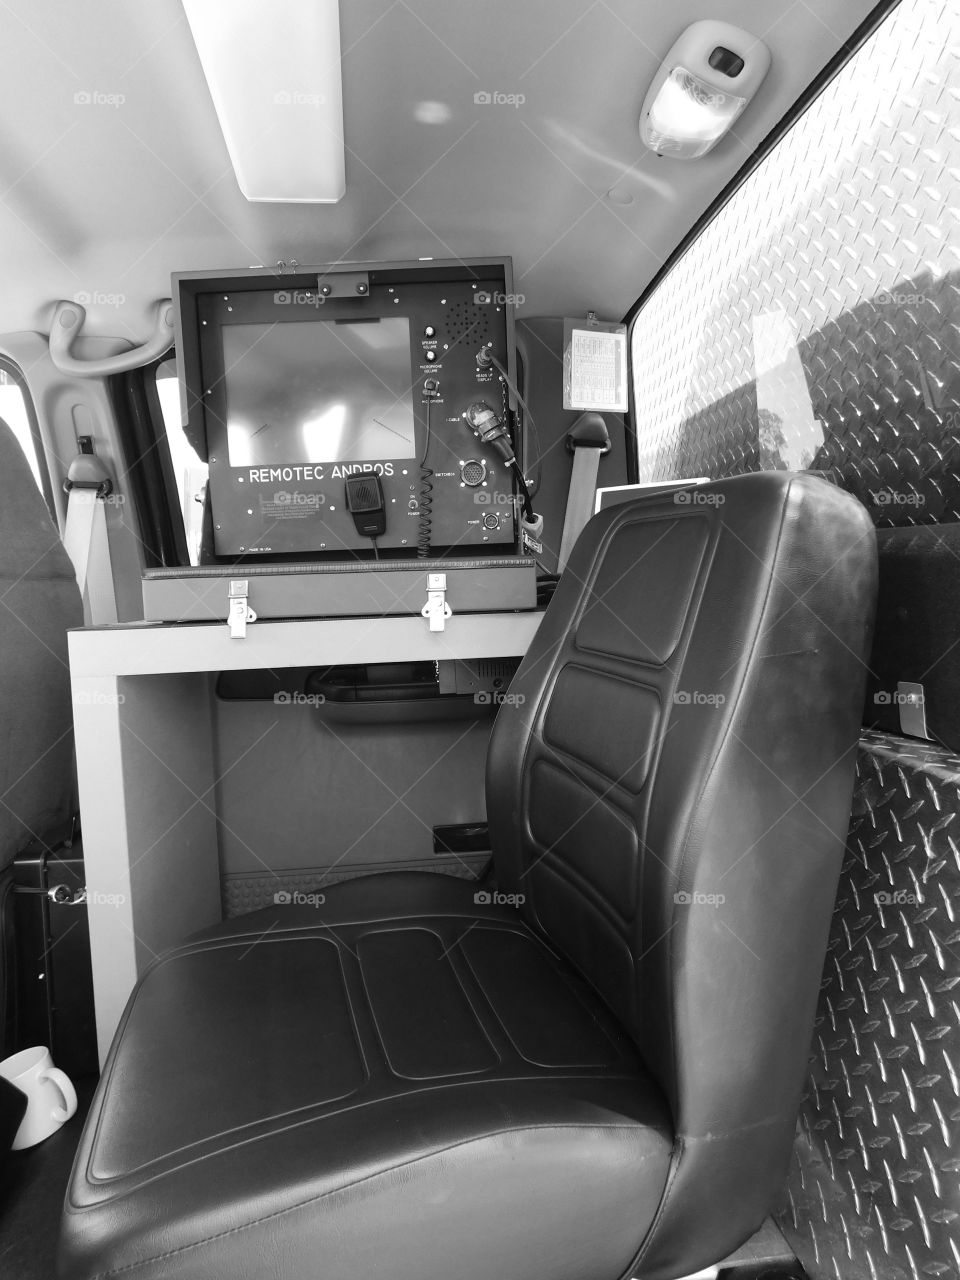 State of Florida Bomb Squad truck with sophisticated computer equipment to detect and assist Bomb Squad Technicians in the detection and removal explosives!